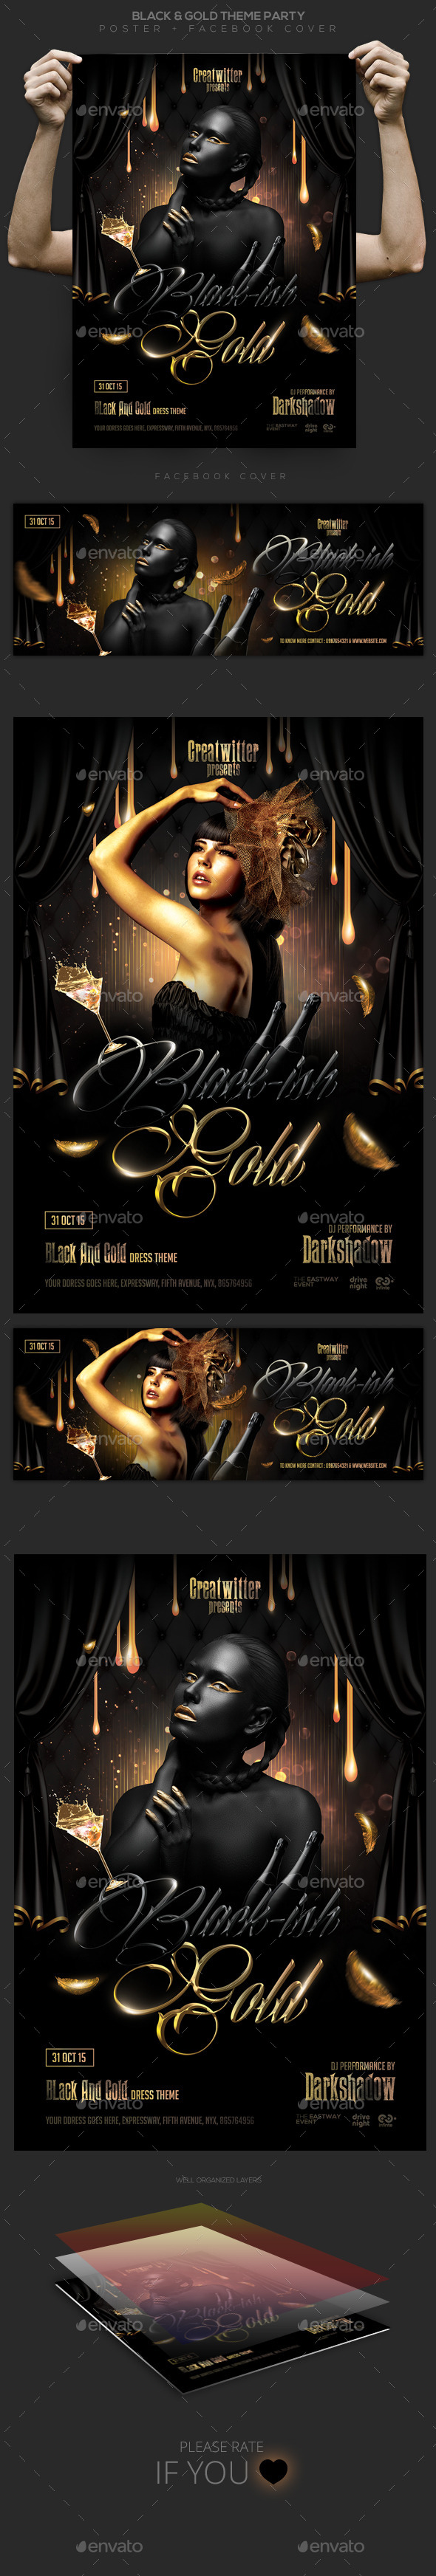 Black & Gold Party Flyer / Poster / Facebook - Clubs & Parties Events